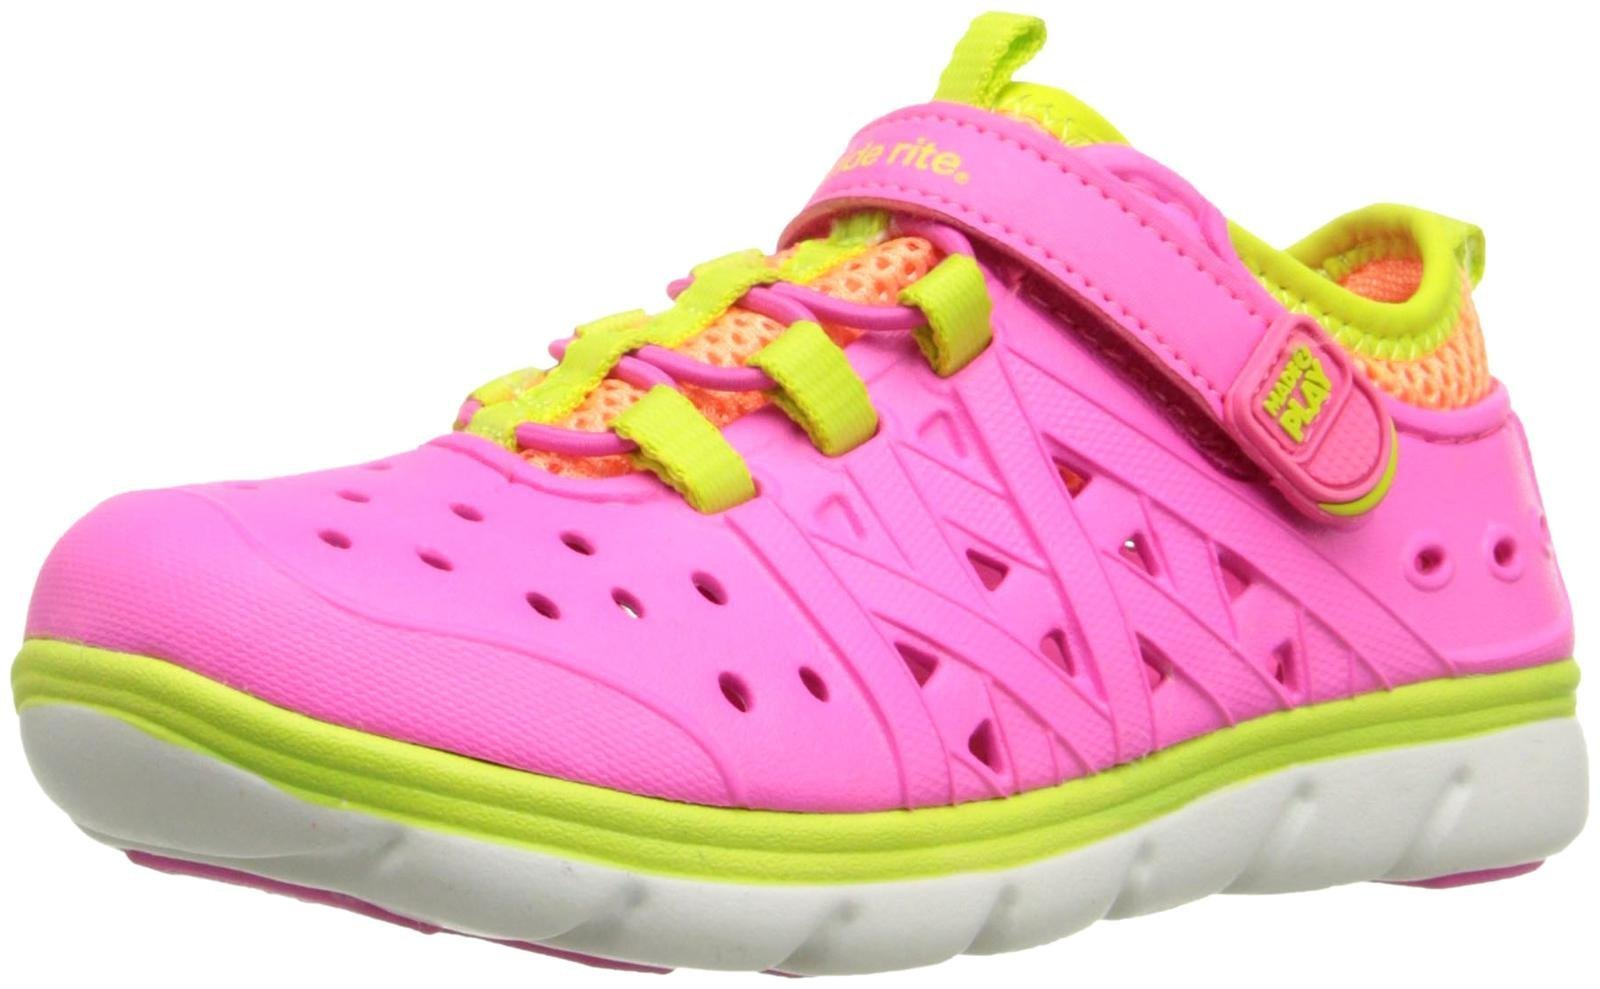 Stride Rite Girls' Made 2 Play Phibian (Toddler/Little Kid), Pink, 10 M by Stride Rite (Image #1)